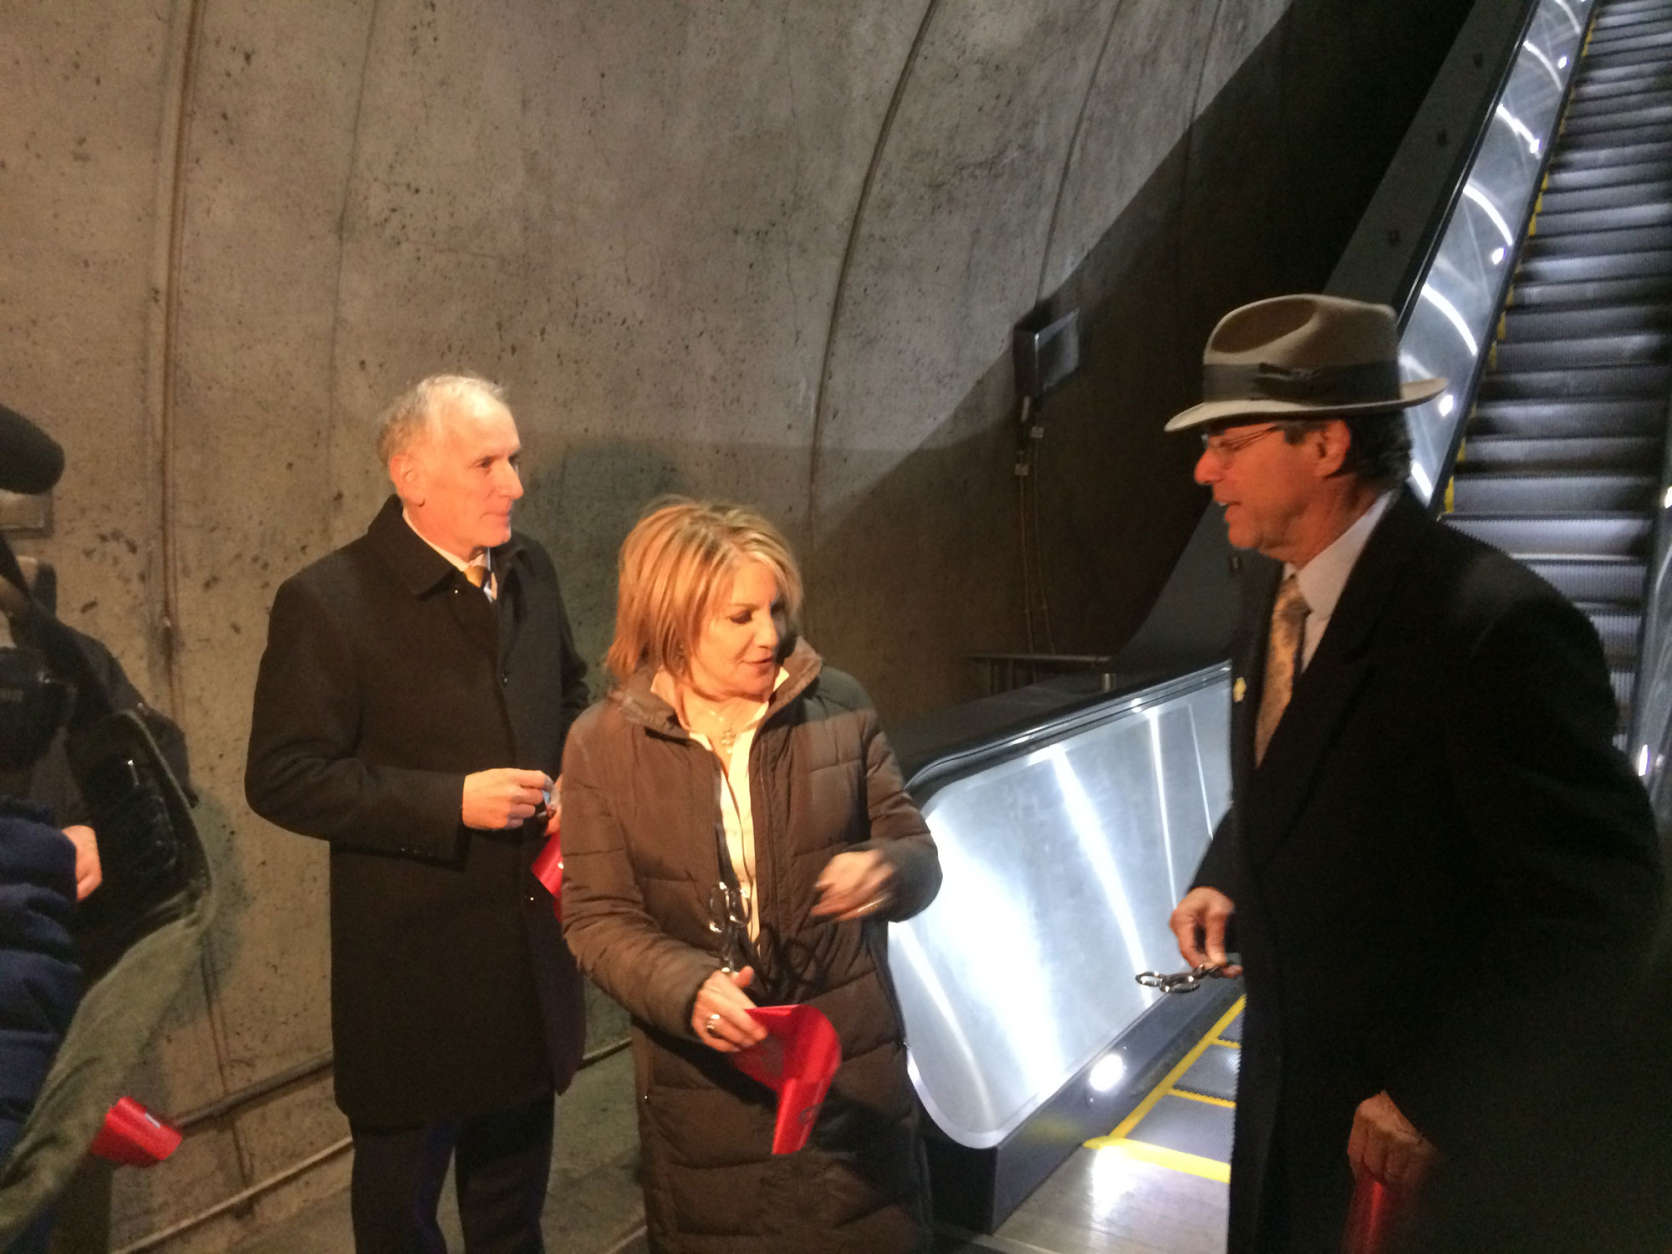 Metro General Manager Paul Wiedefeld; Jane Fairweather, of the Bethesda Chamber of Commerce task for on Metro, and Montgomery County Council President Roger Berliner cut the ribbon on the new escalators at the Bethesda Metro station. (WTOP/Dick Uliano)